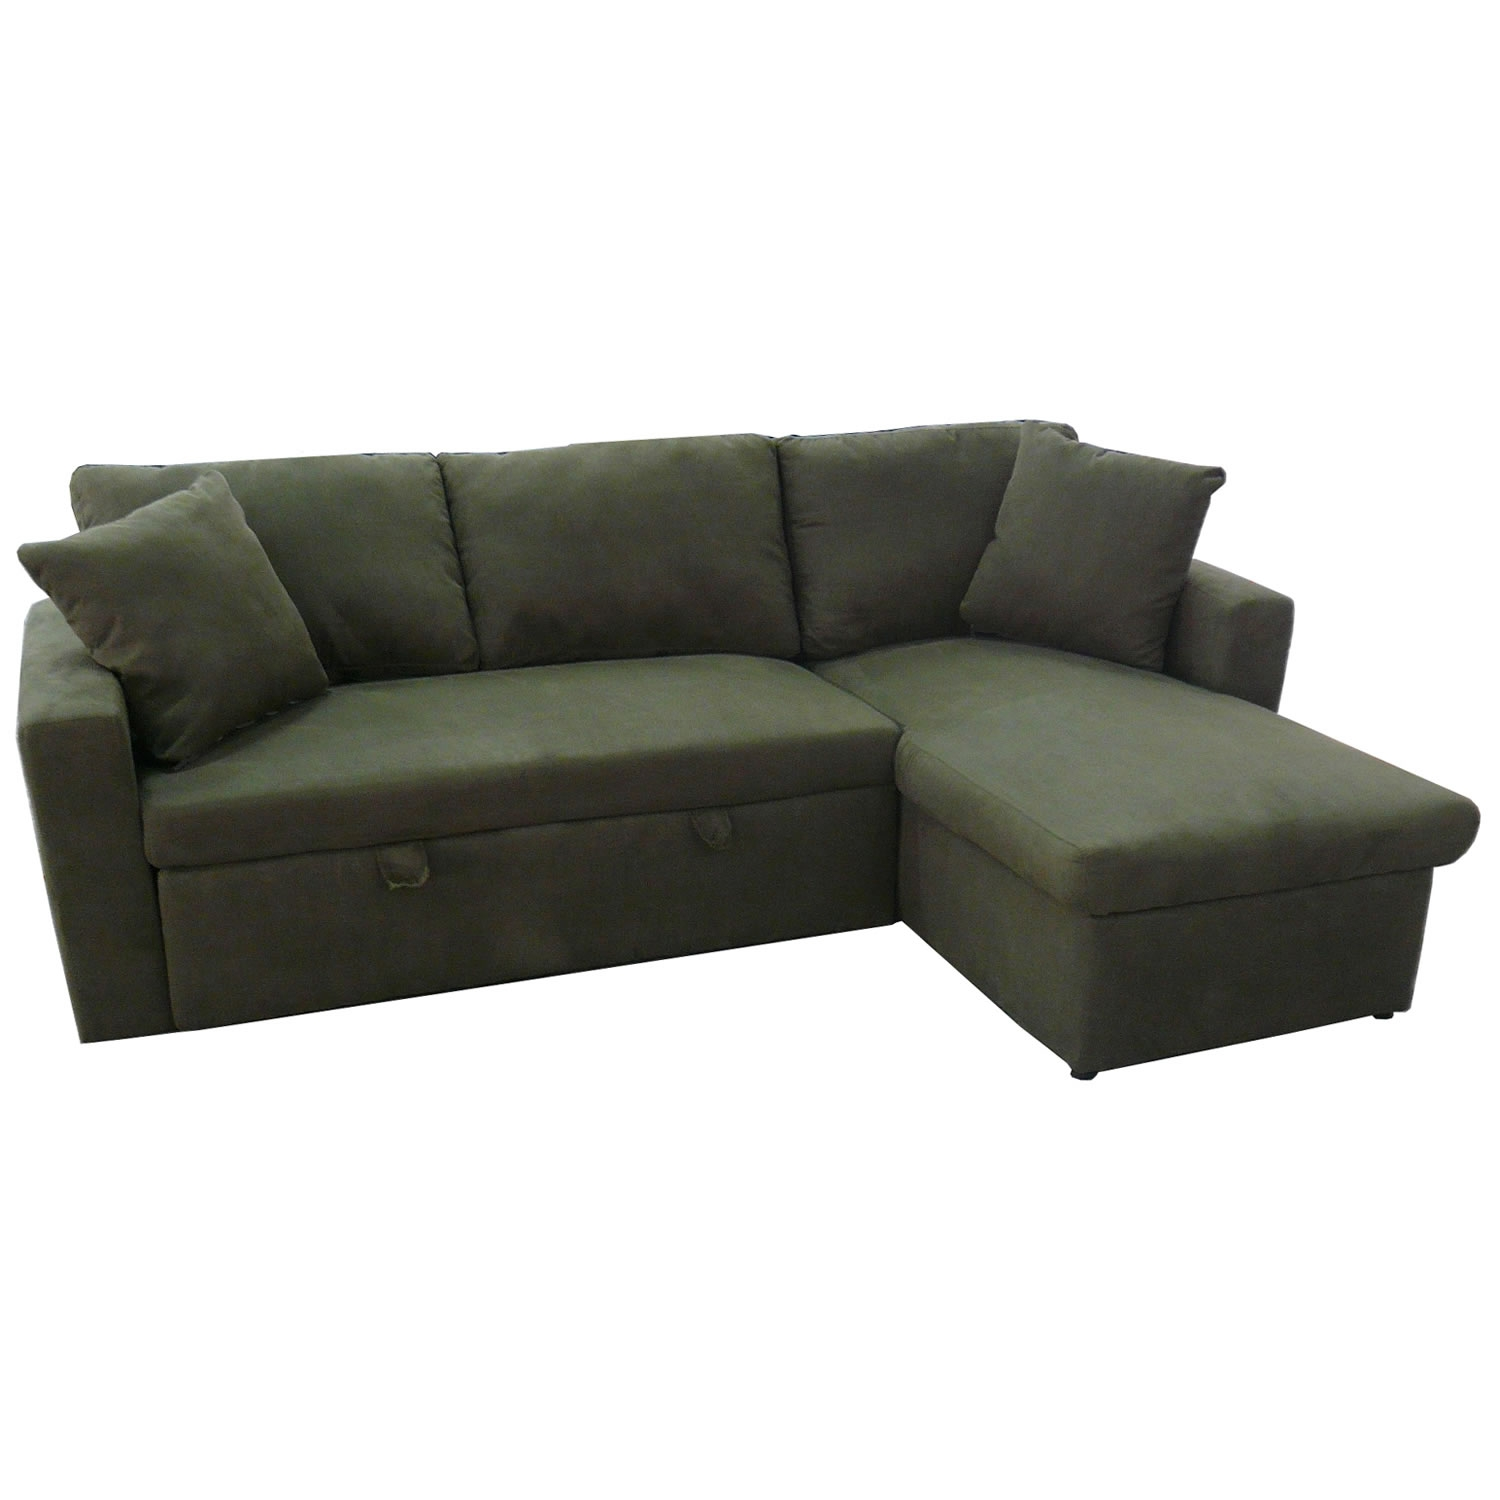 Sky Fabric Corner Sofa Bed With Storage S3net Sectional Sofas In Fabric Corner Sofa Bed (Image 14 of 15)